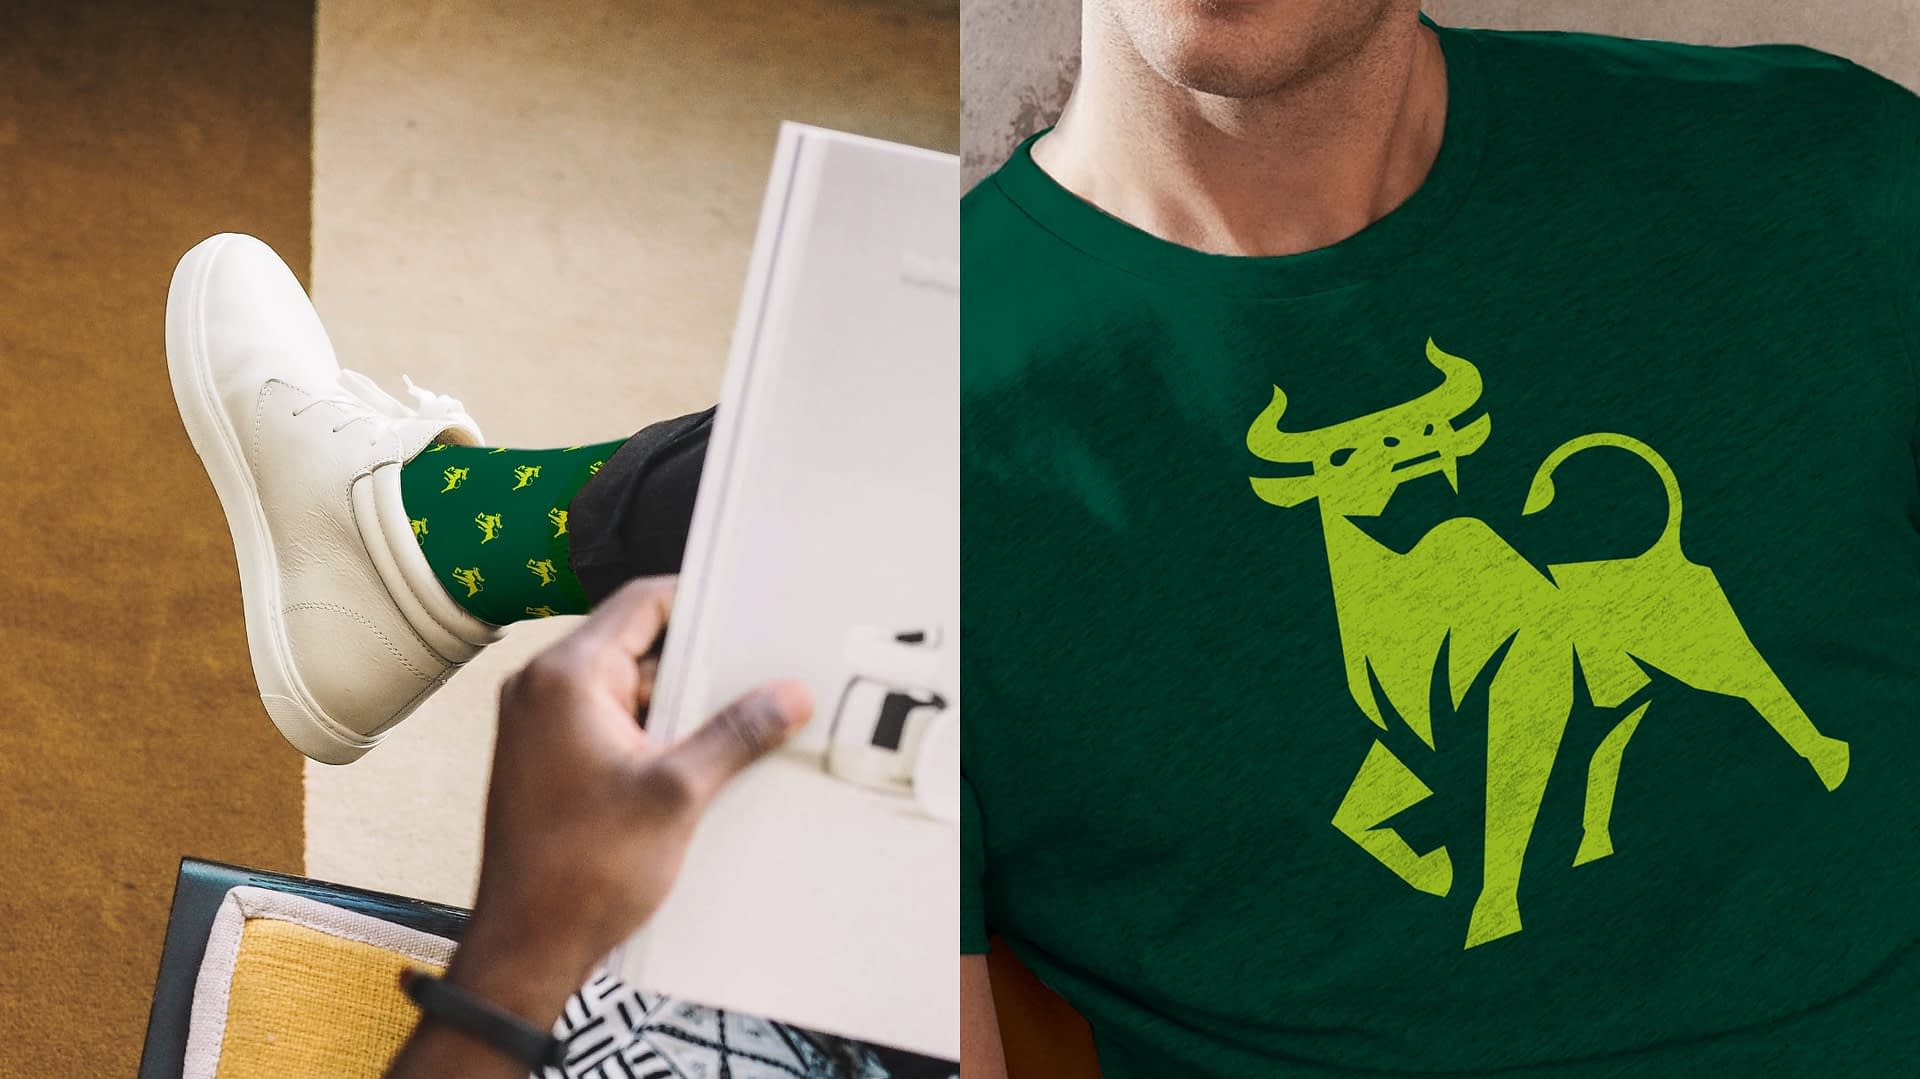 Examples of how USF's new academic logo can be applied to apparel